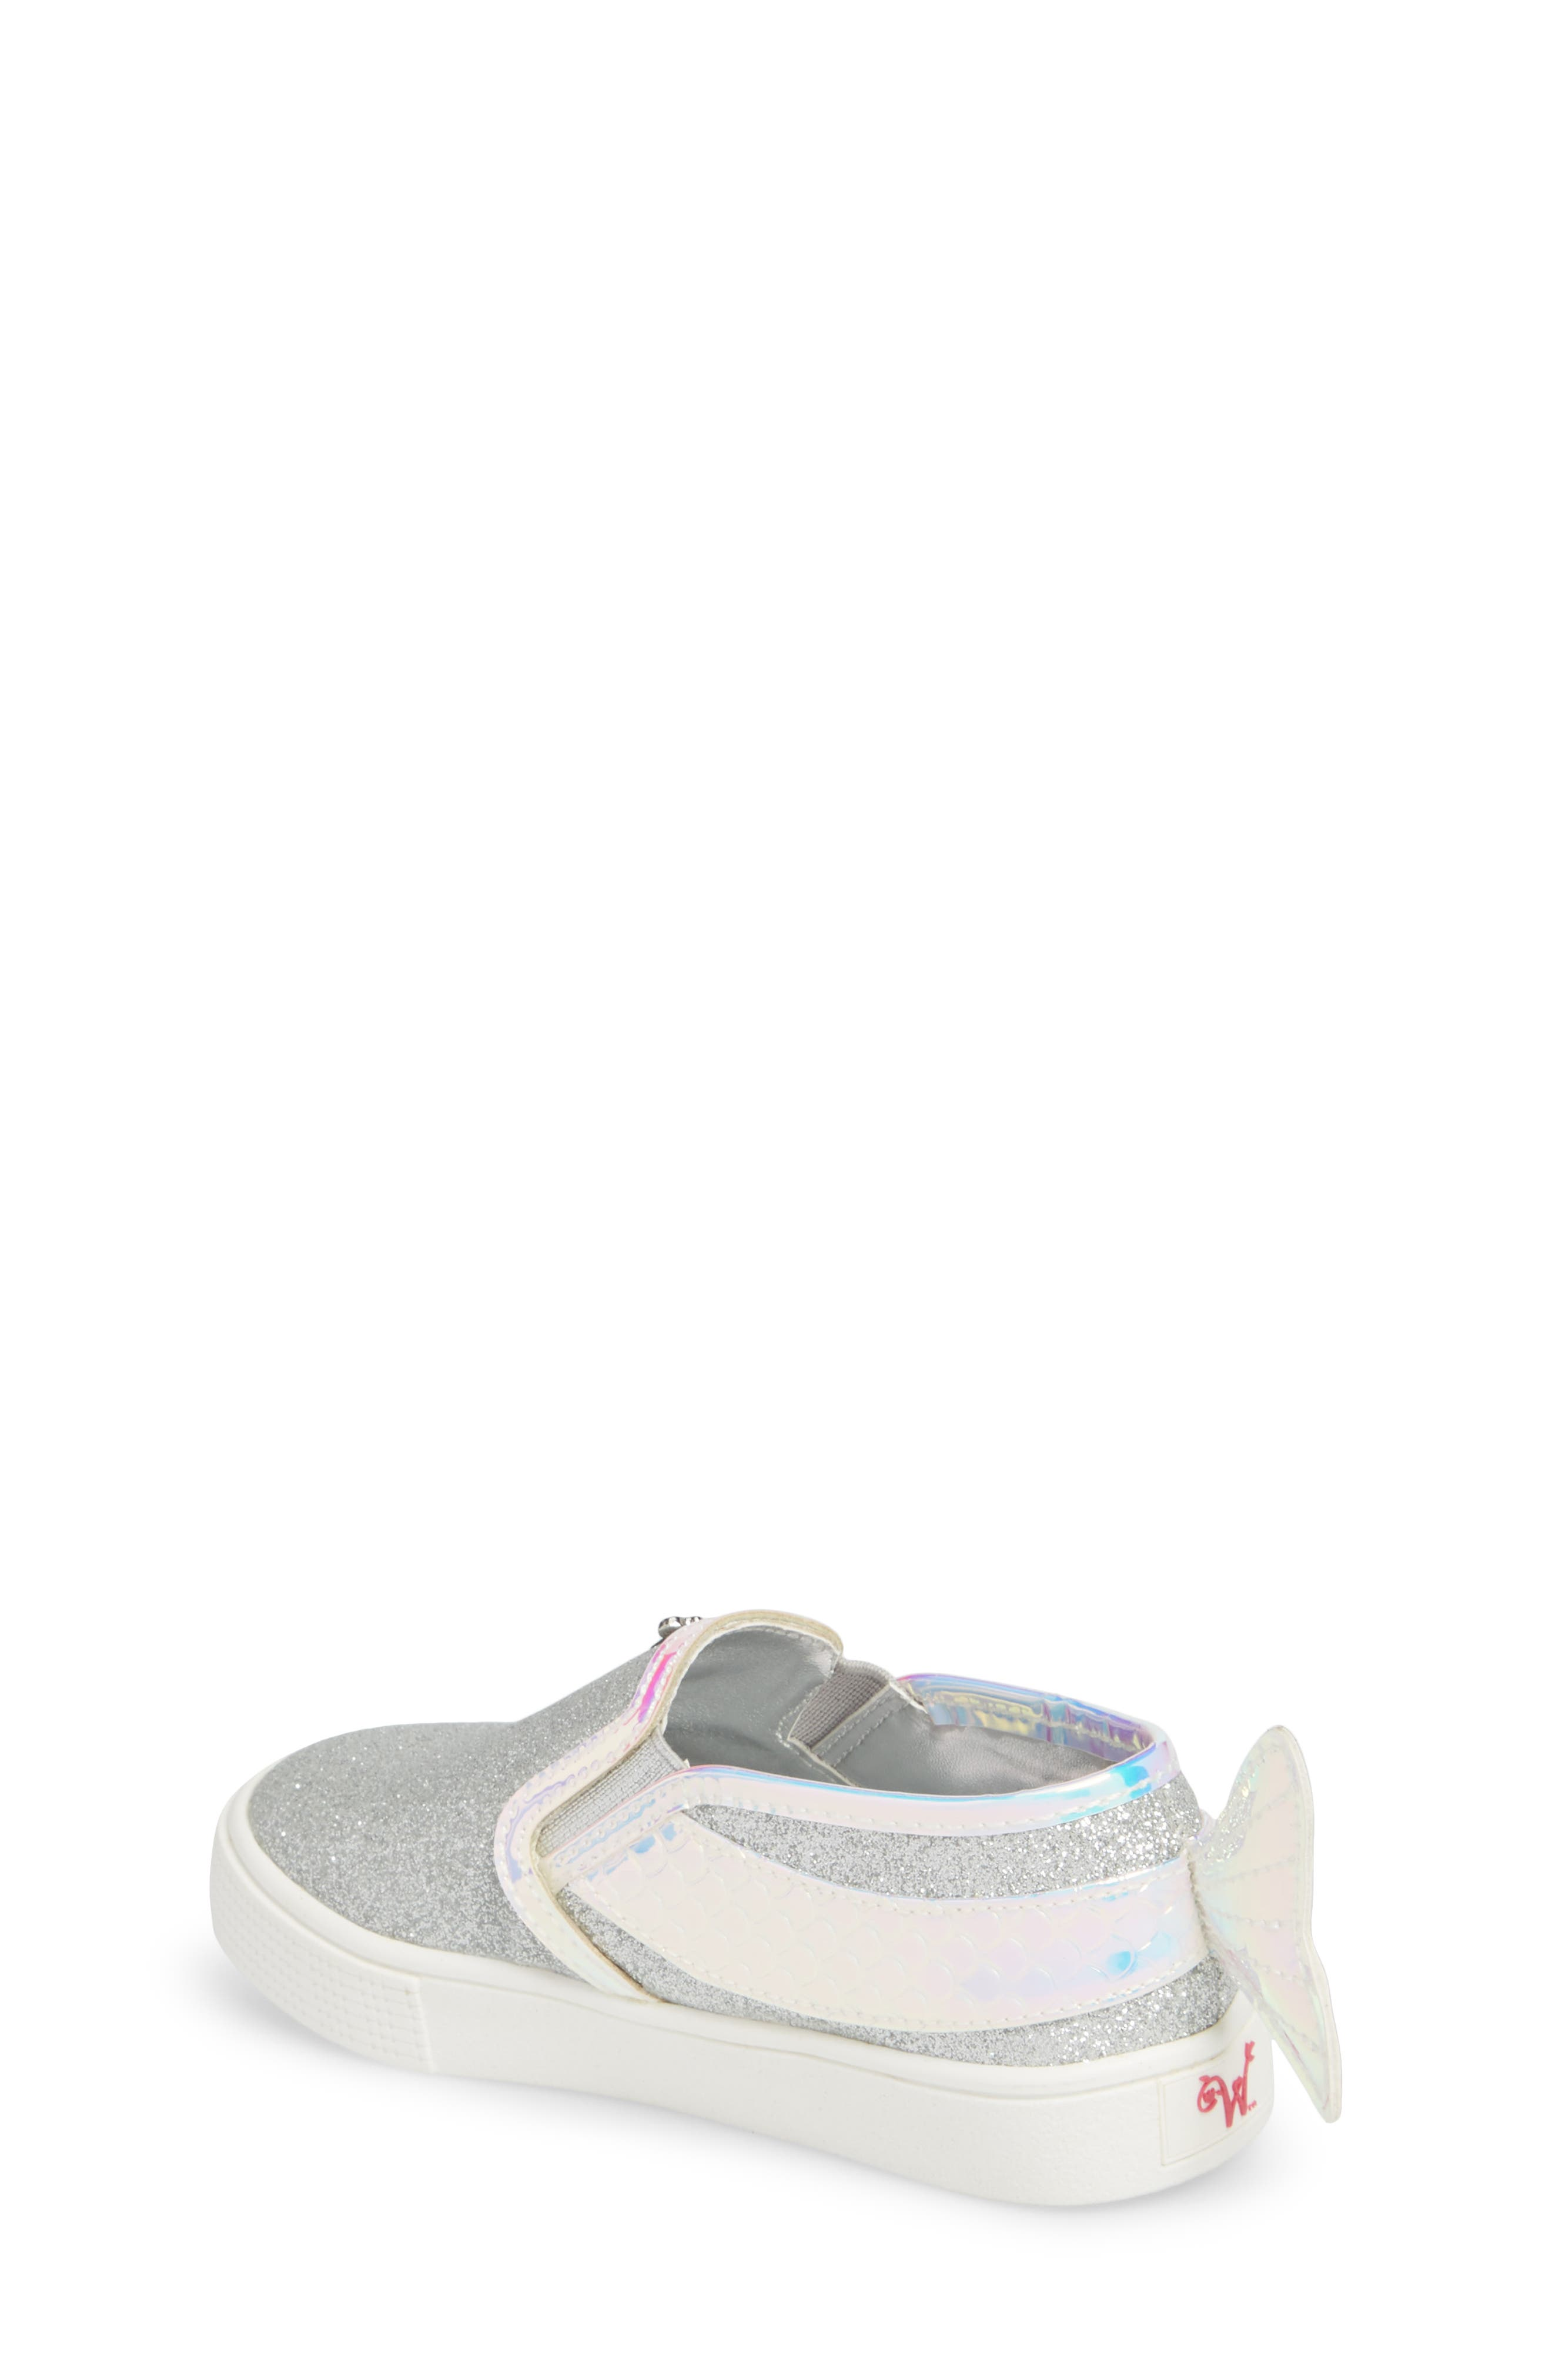 Camille Mermaid Glitter Sneaker,                             Alternate thumbnail 2, color,                             040